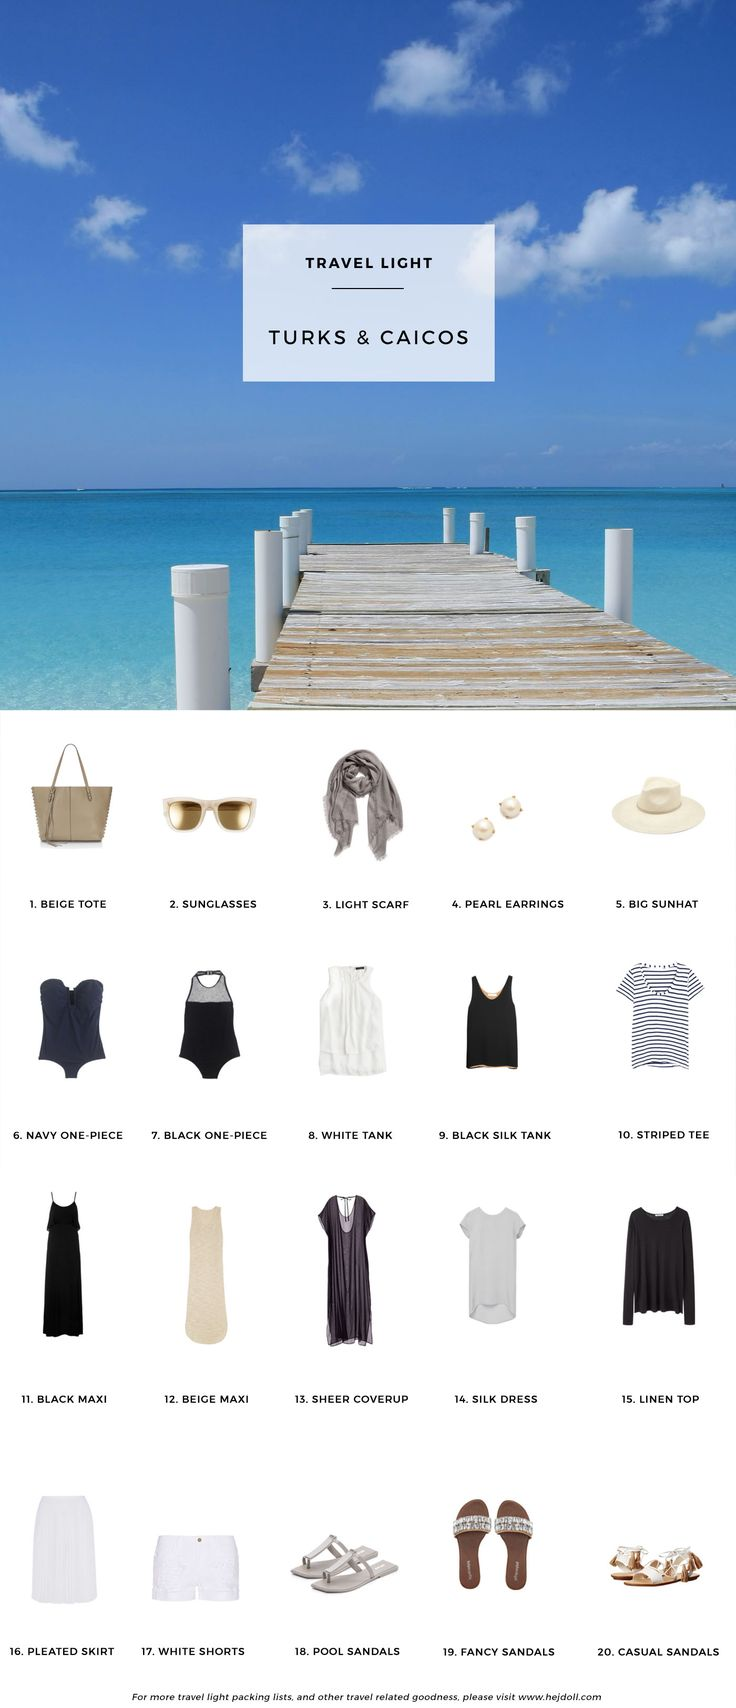 What to pack for Turks and Caicos in the Caribbean. 20 items, 10+ days/outfits, 1 carry on suitcase. #travellight #packingtips #traveltips